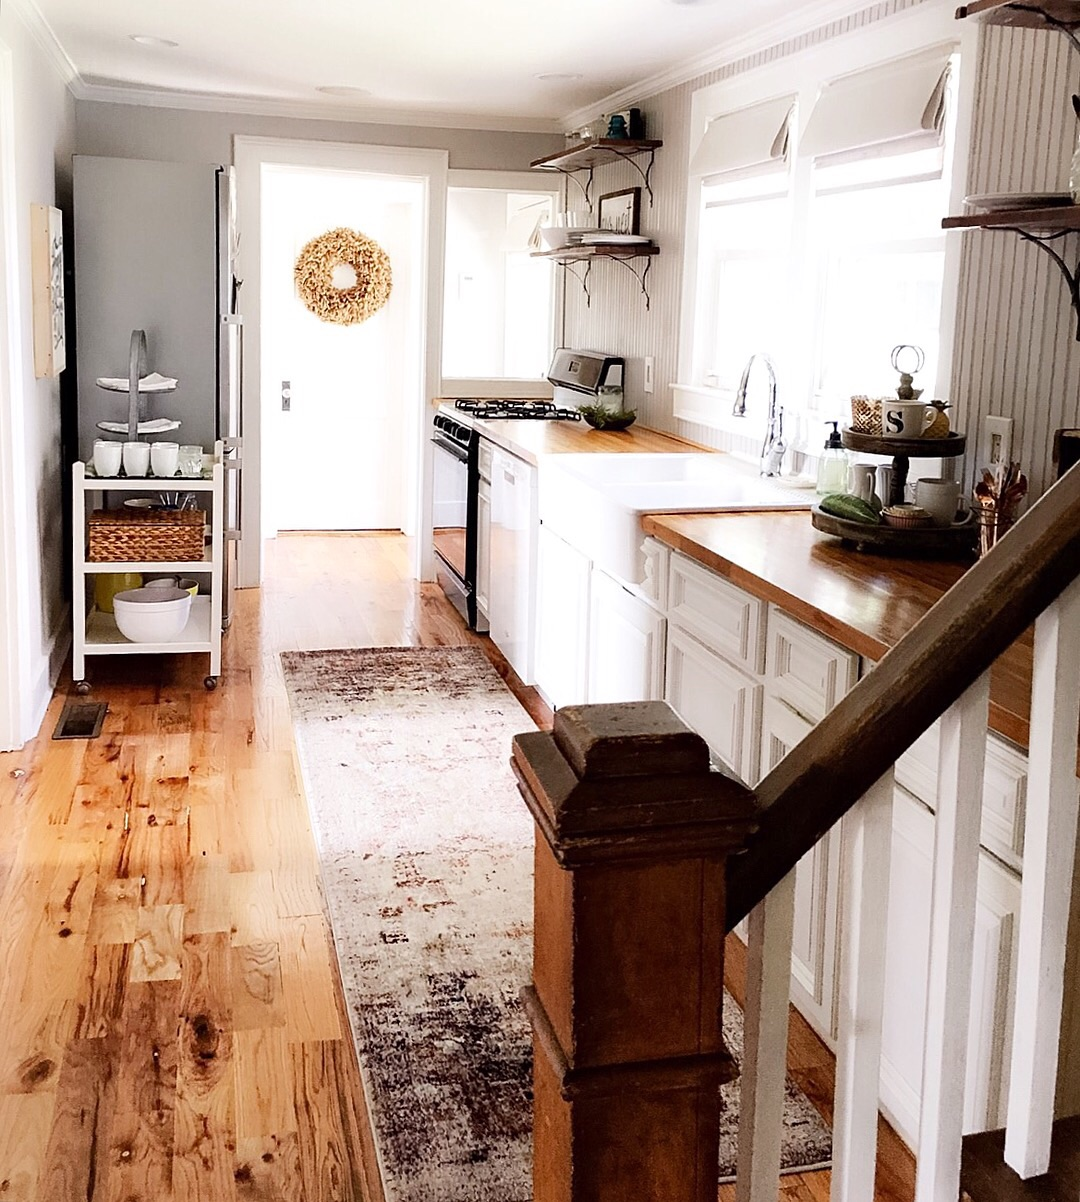 Floor: Pinewood  Countertops: Butcher Block, came with the house when I bought it   Two Tiered Tray:  Textured Home   3 Tiered Stand on vintage bar cart:  Crate & Barrel   Wreath: Rust & Honey